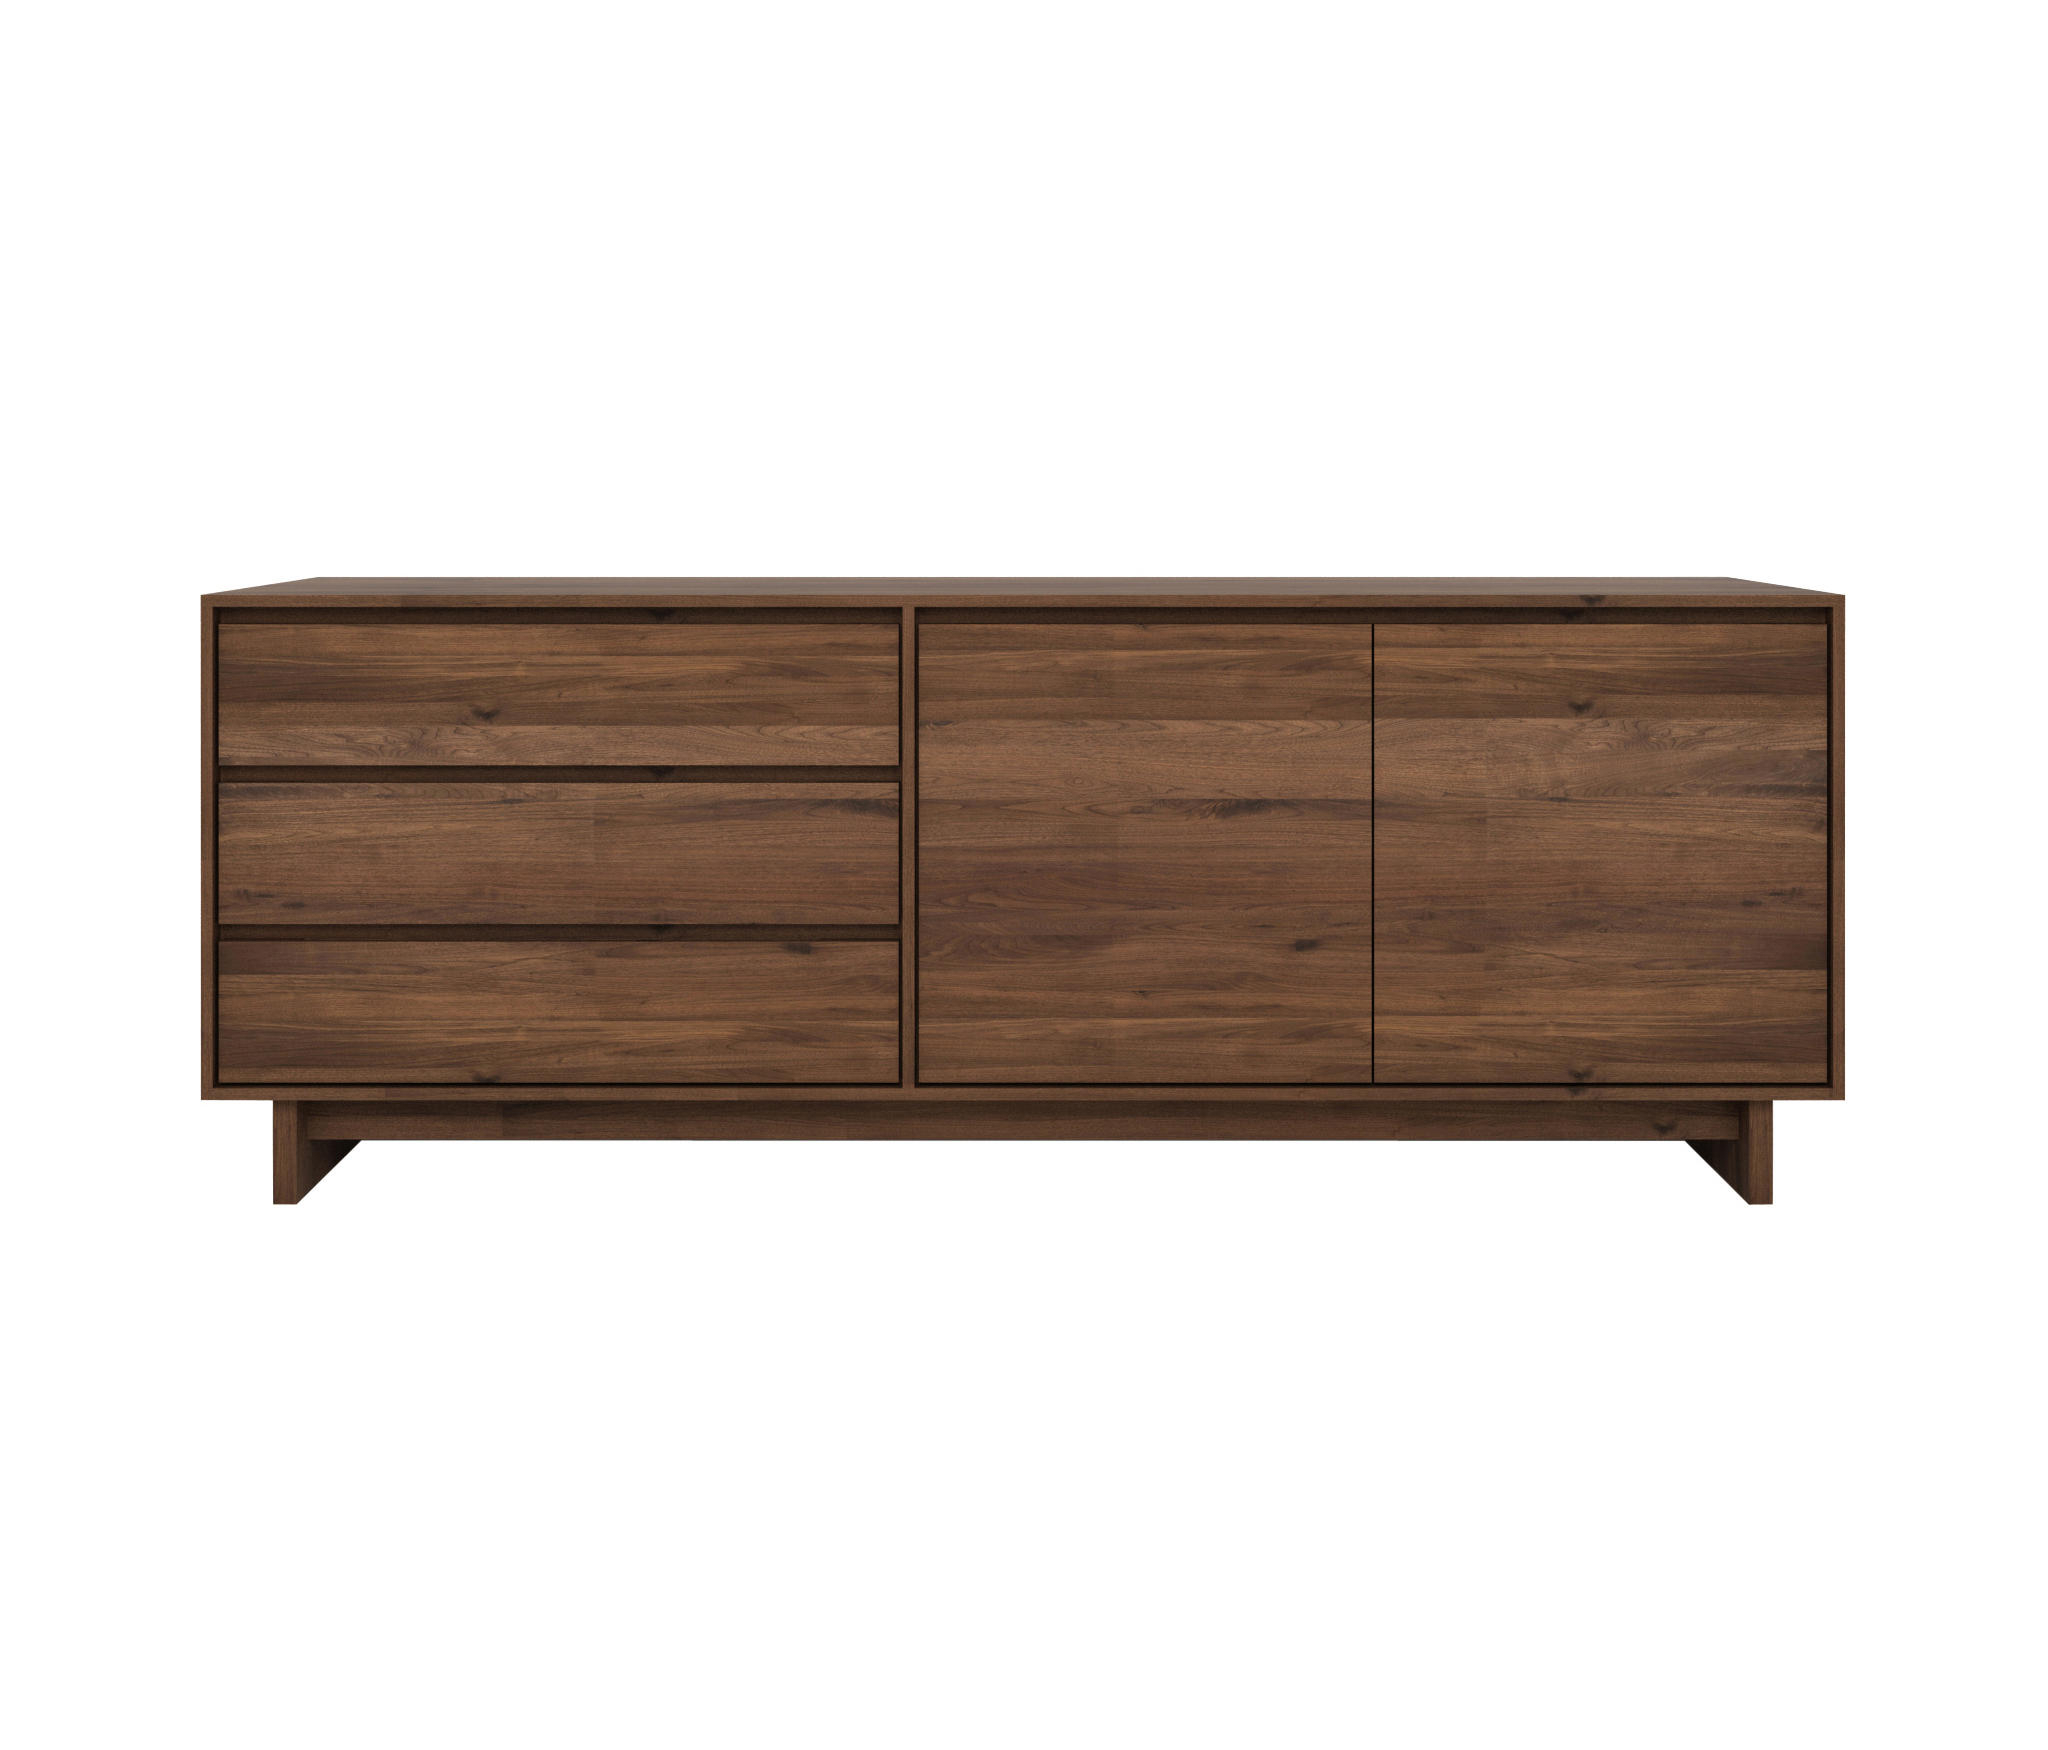 Trendy Walnut Finish 2 Door/3 Drawer Sideboards With Walnut Wave Sideboard – Sideboards From Ethnicraft (View 13 of 20)